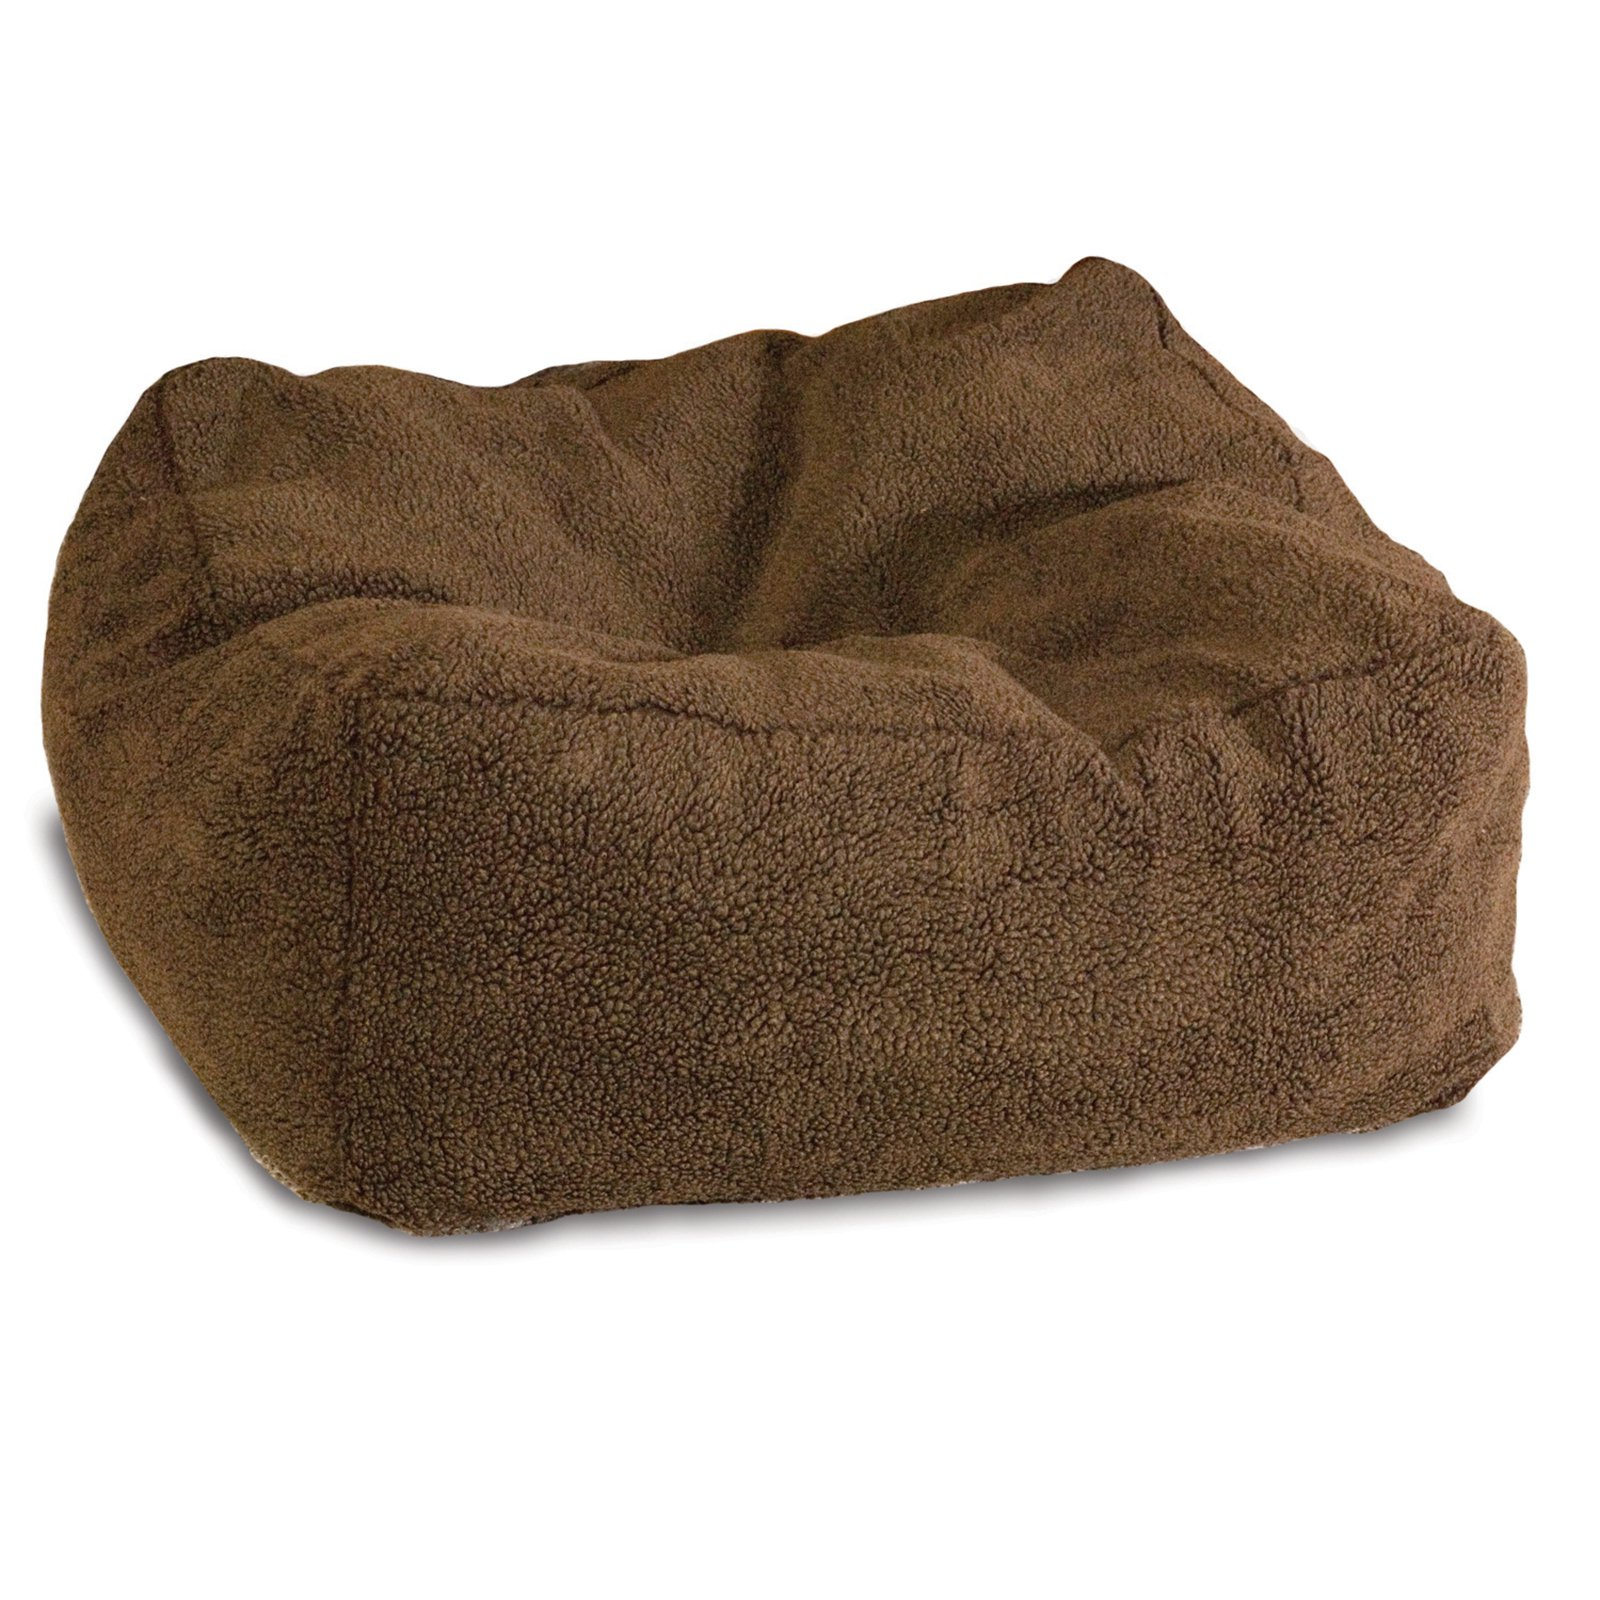 k h pet products cuddle cube dog bed large gray walmart com